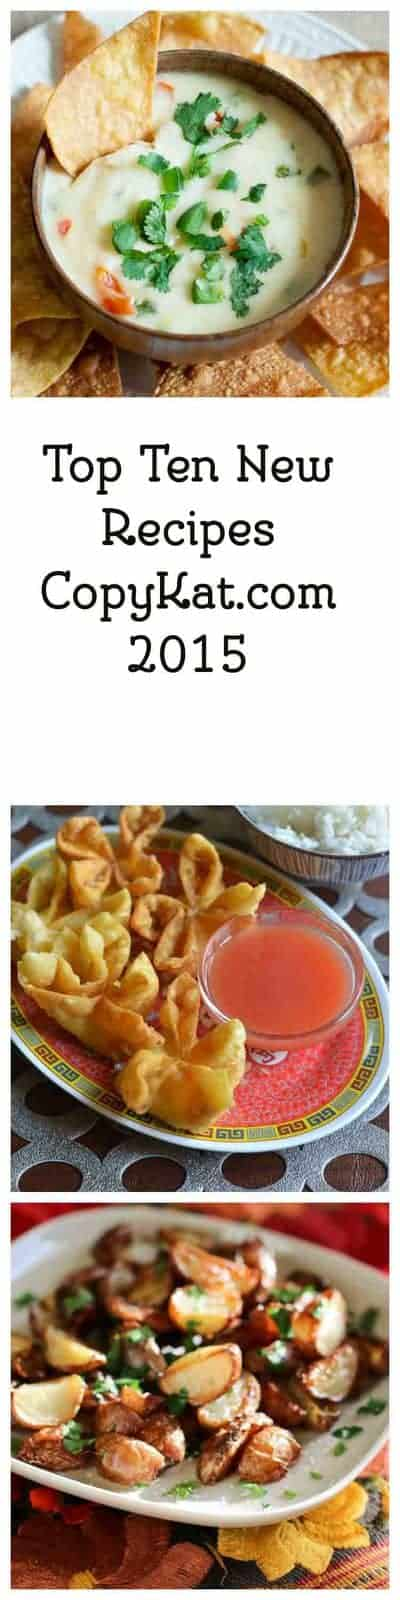 Check out the most popular recipes on CopyKat.com. I bet you find a new favorite recipe here.